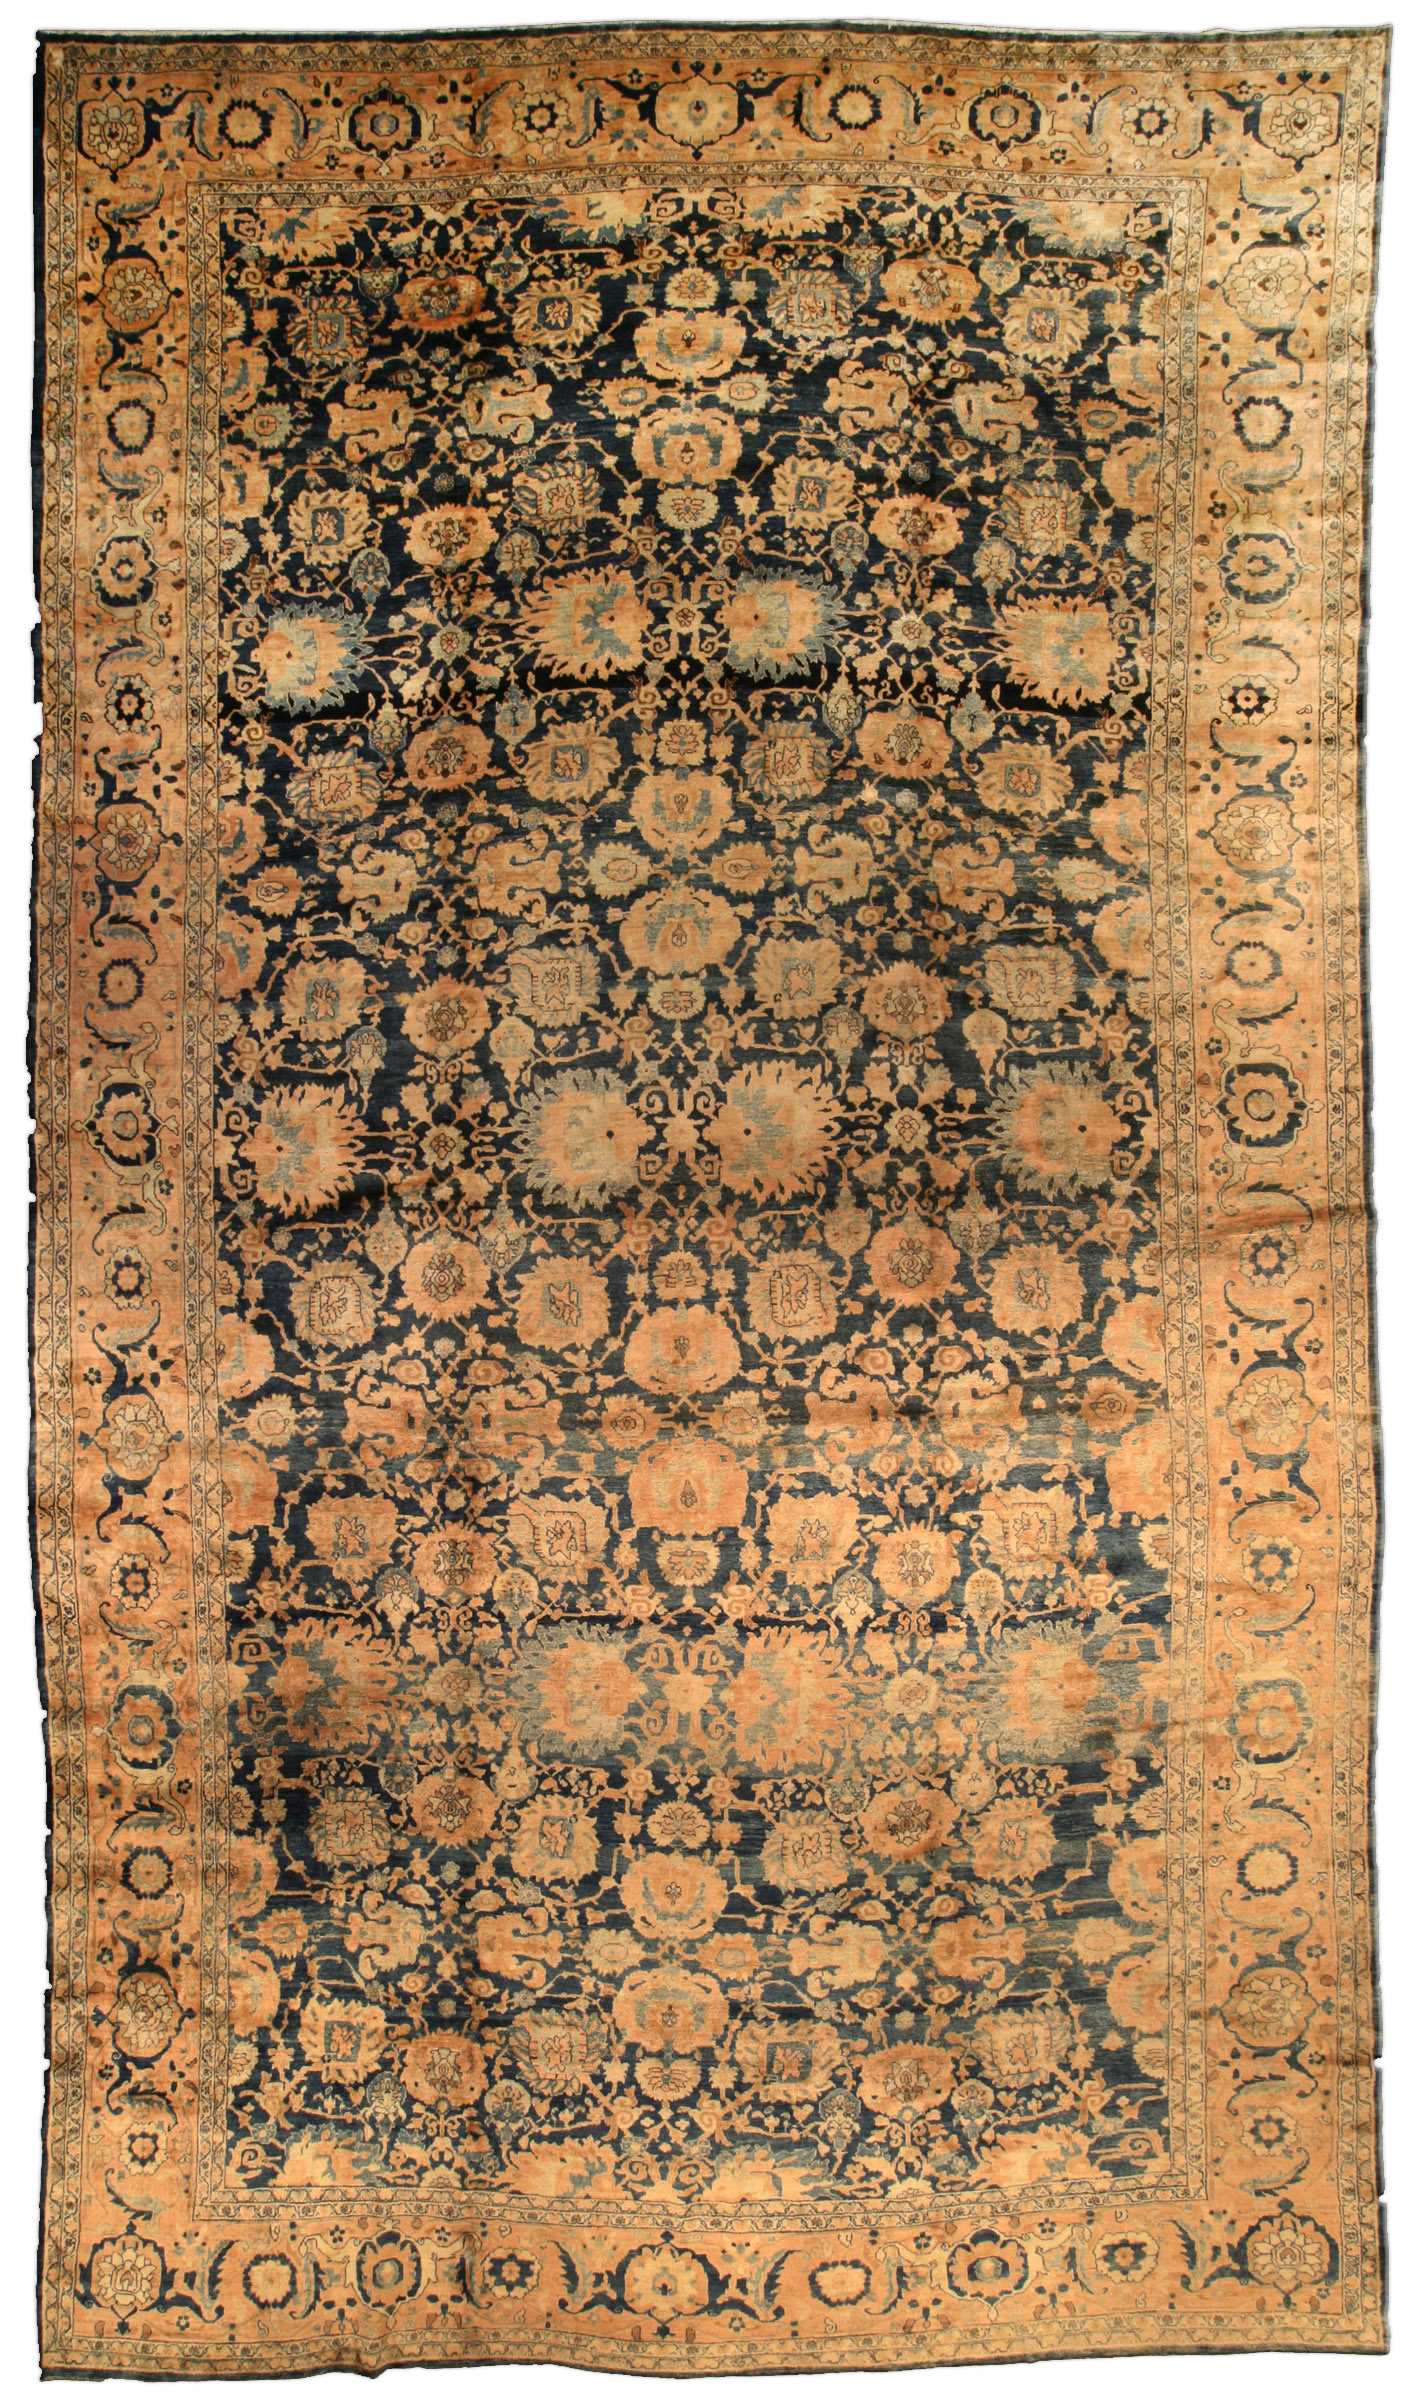 Sarouk Rugs Amp Carpets For Sale Antique Oriental Persian